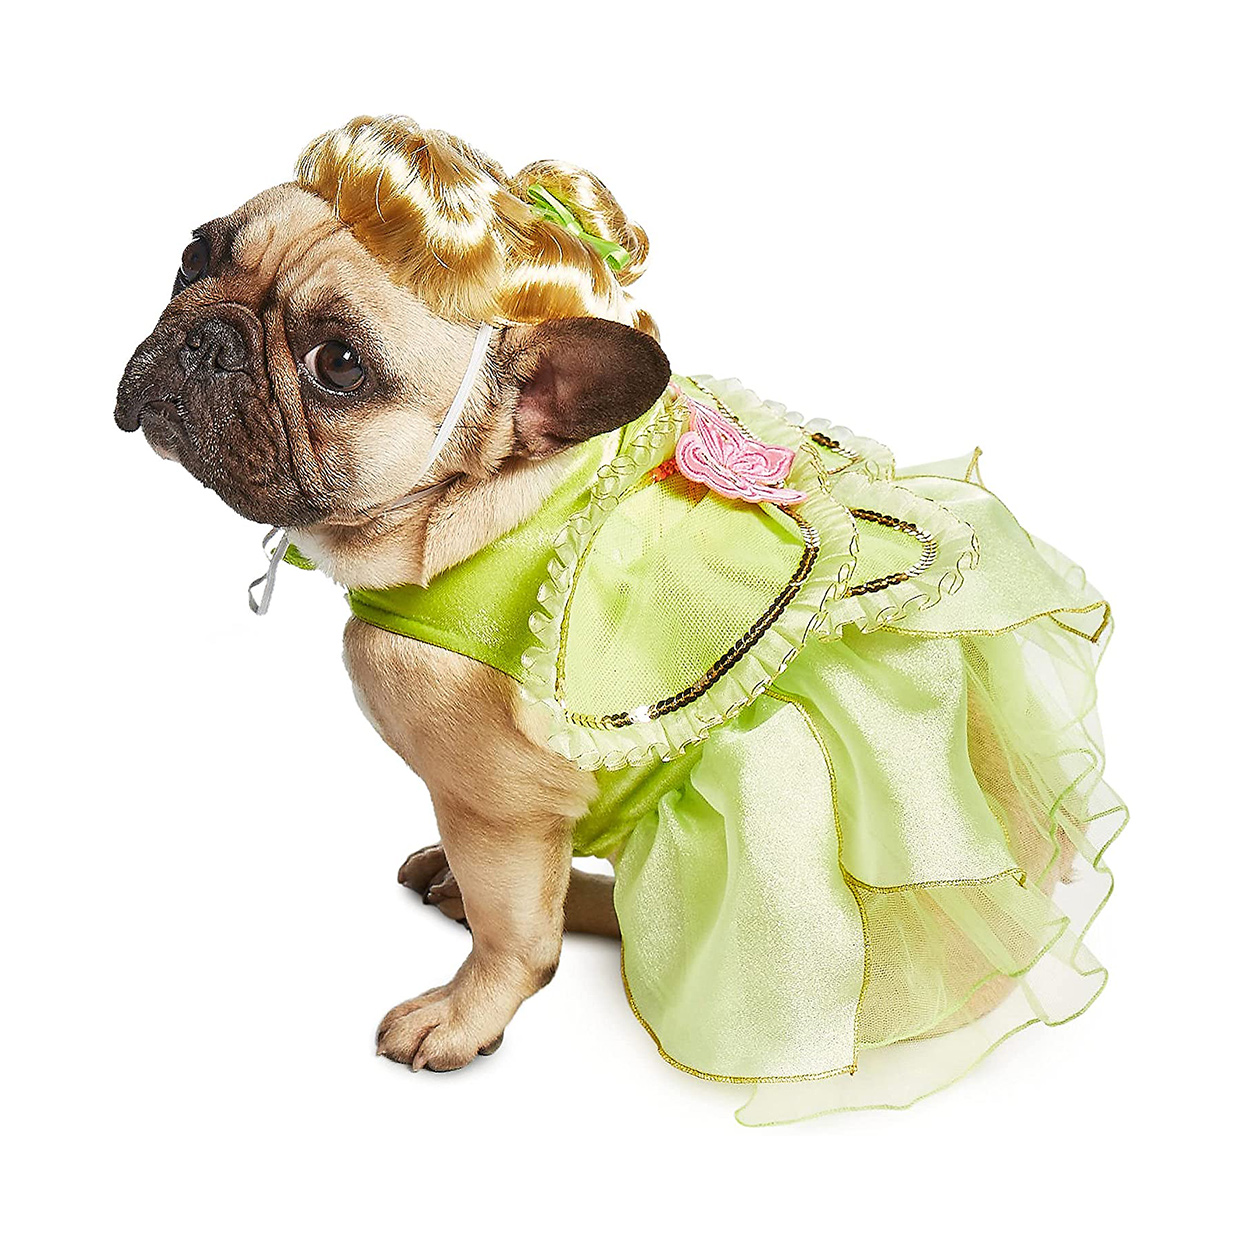 Dog wearing a Disney Tinker Belle Costume on a white background